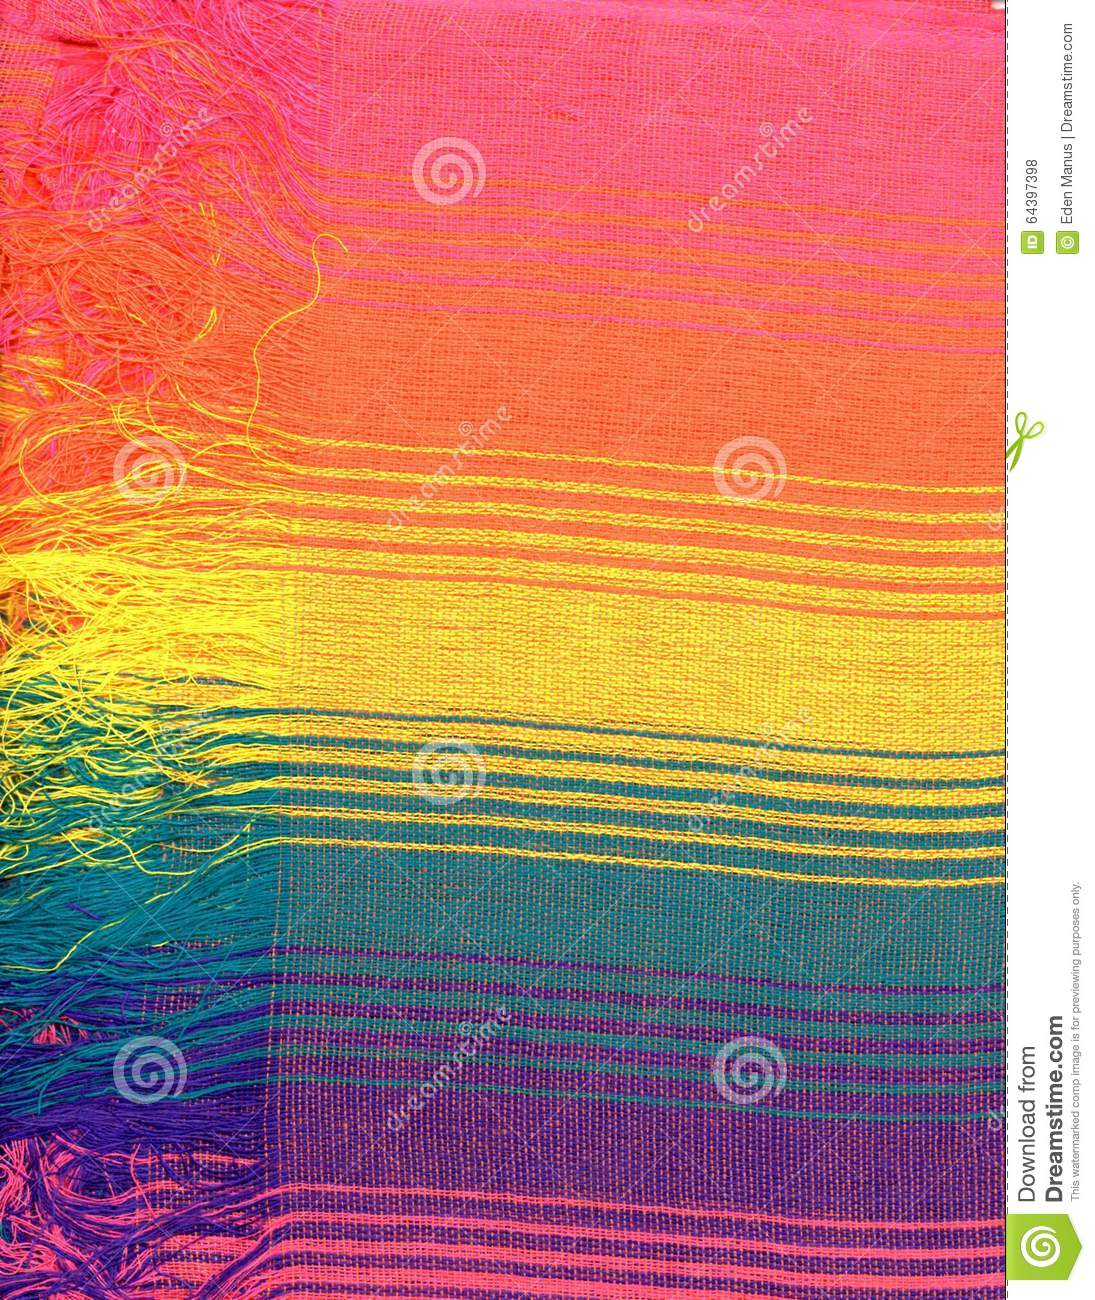 Rainbow Book Cover Material : Rainbow woven fabric stock photo image of green purple